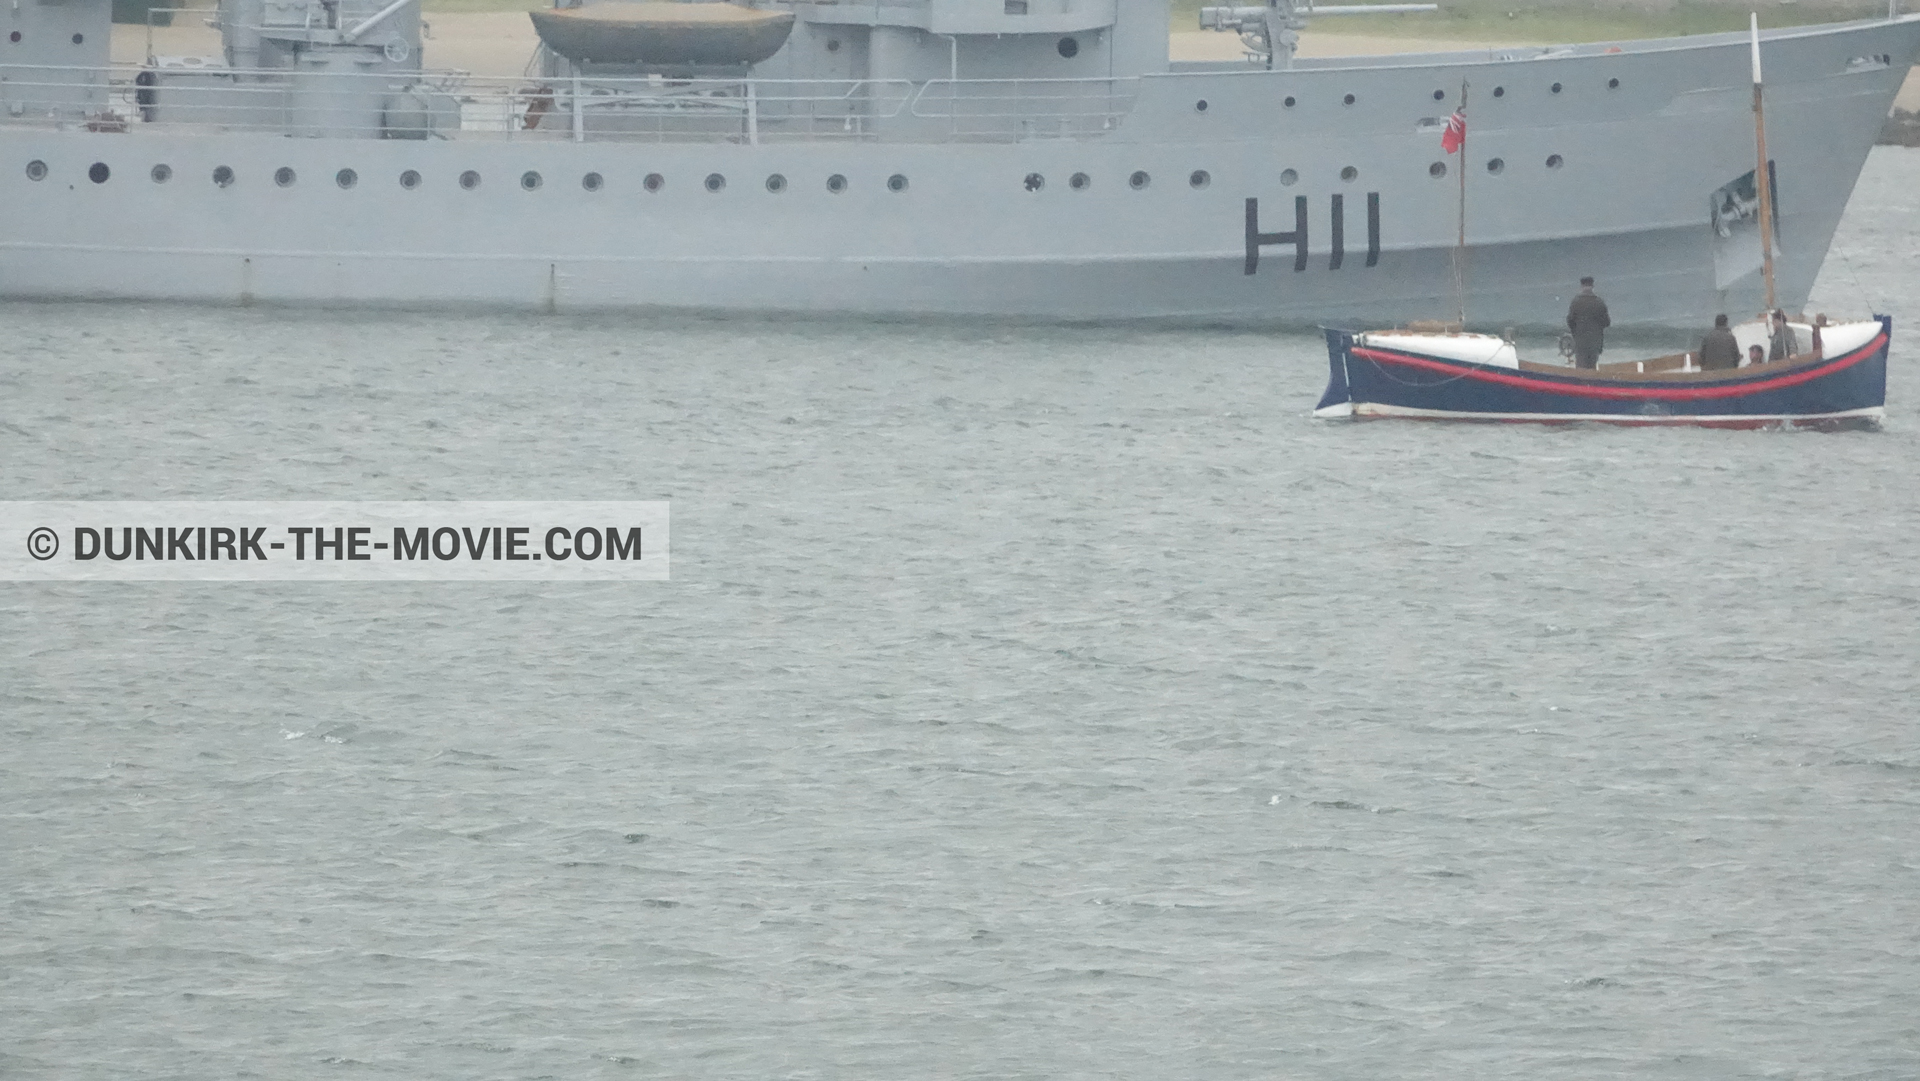 Picture with boat, H11 - MLV Castor, Henry Finlay lifeboat,  from behind the scene of the Dunkirk movie by Nolan